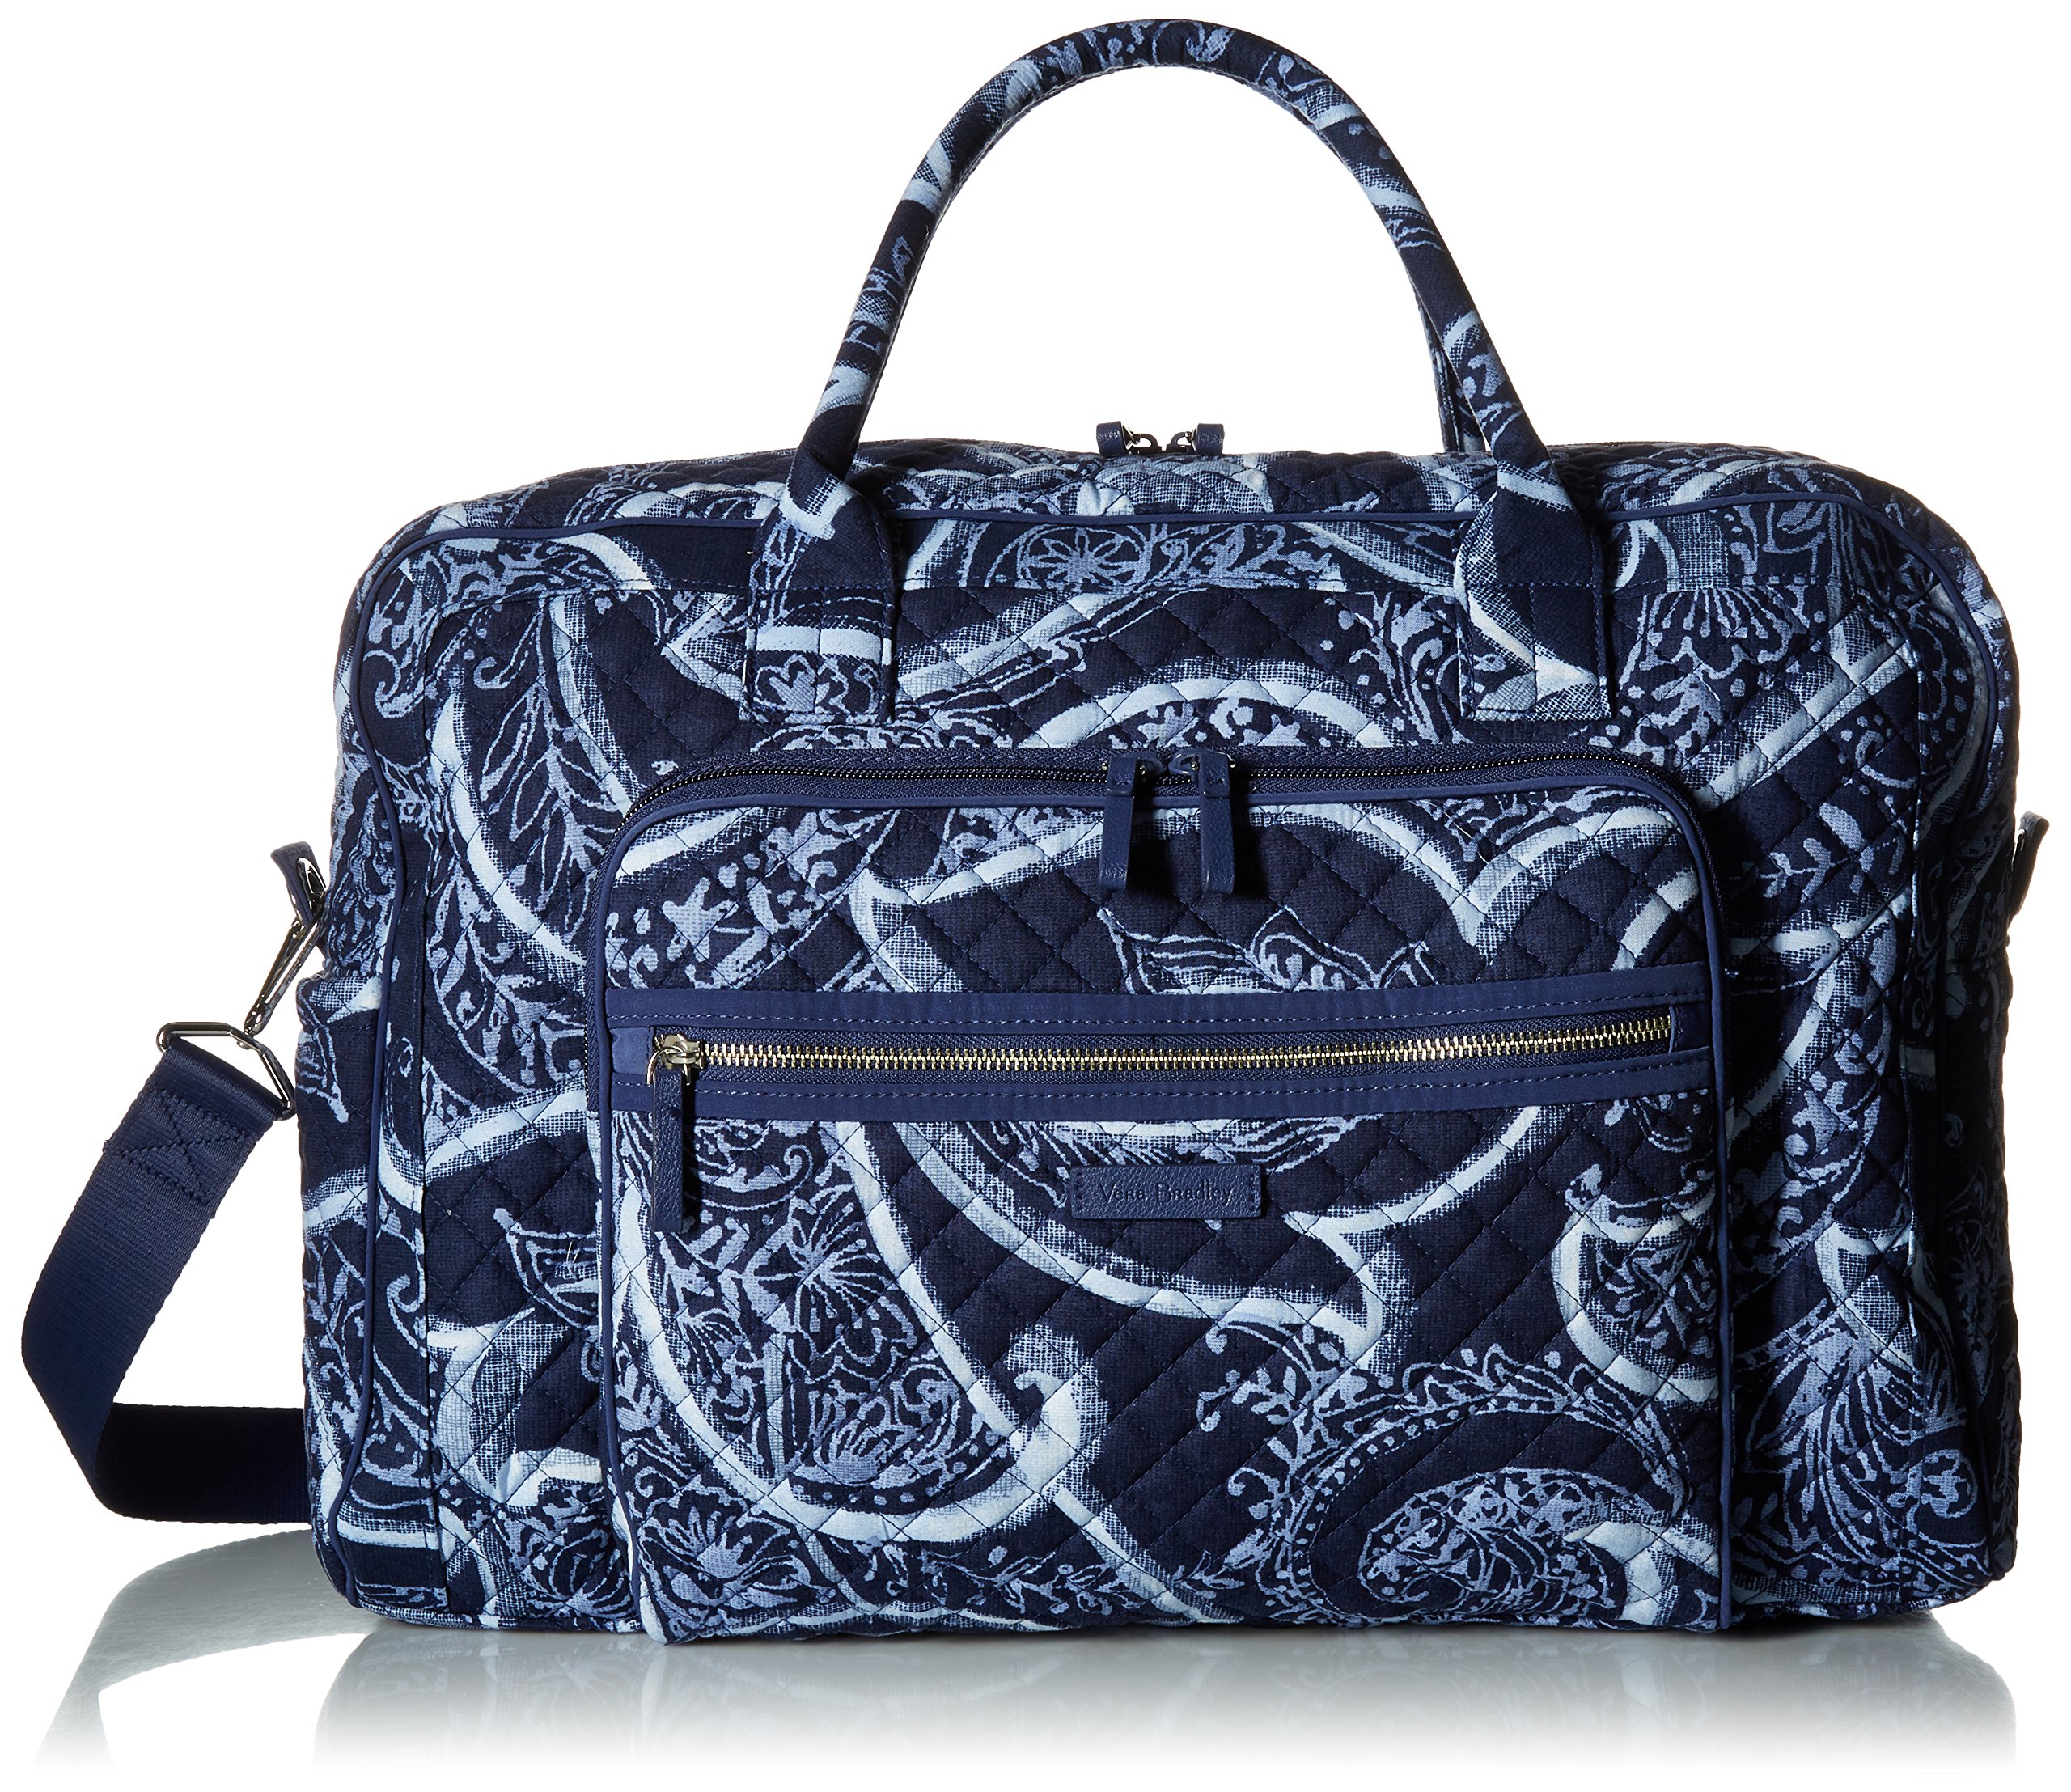 Vera Bradley Iconic Weekender Travel Bag, Signature Cotton, Indio by Vera Bradley (Image #1)